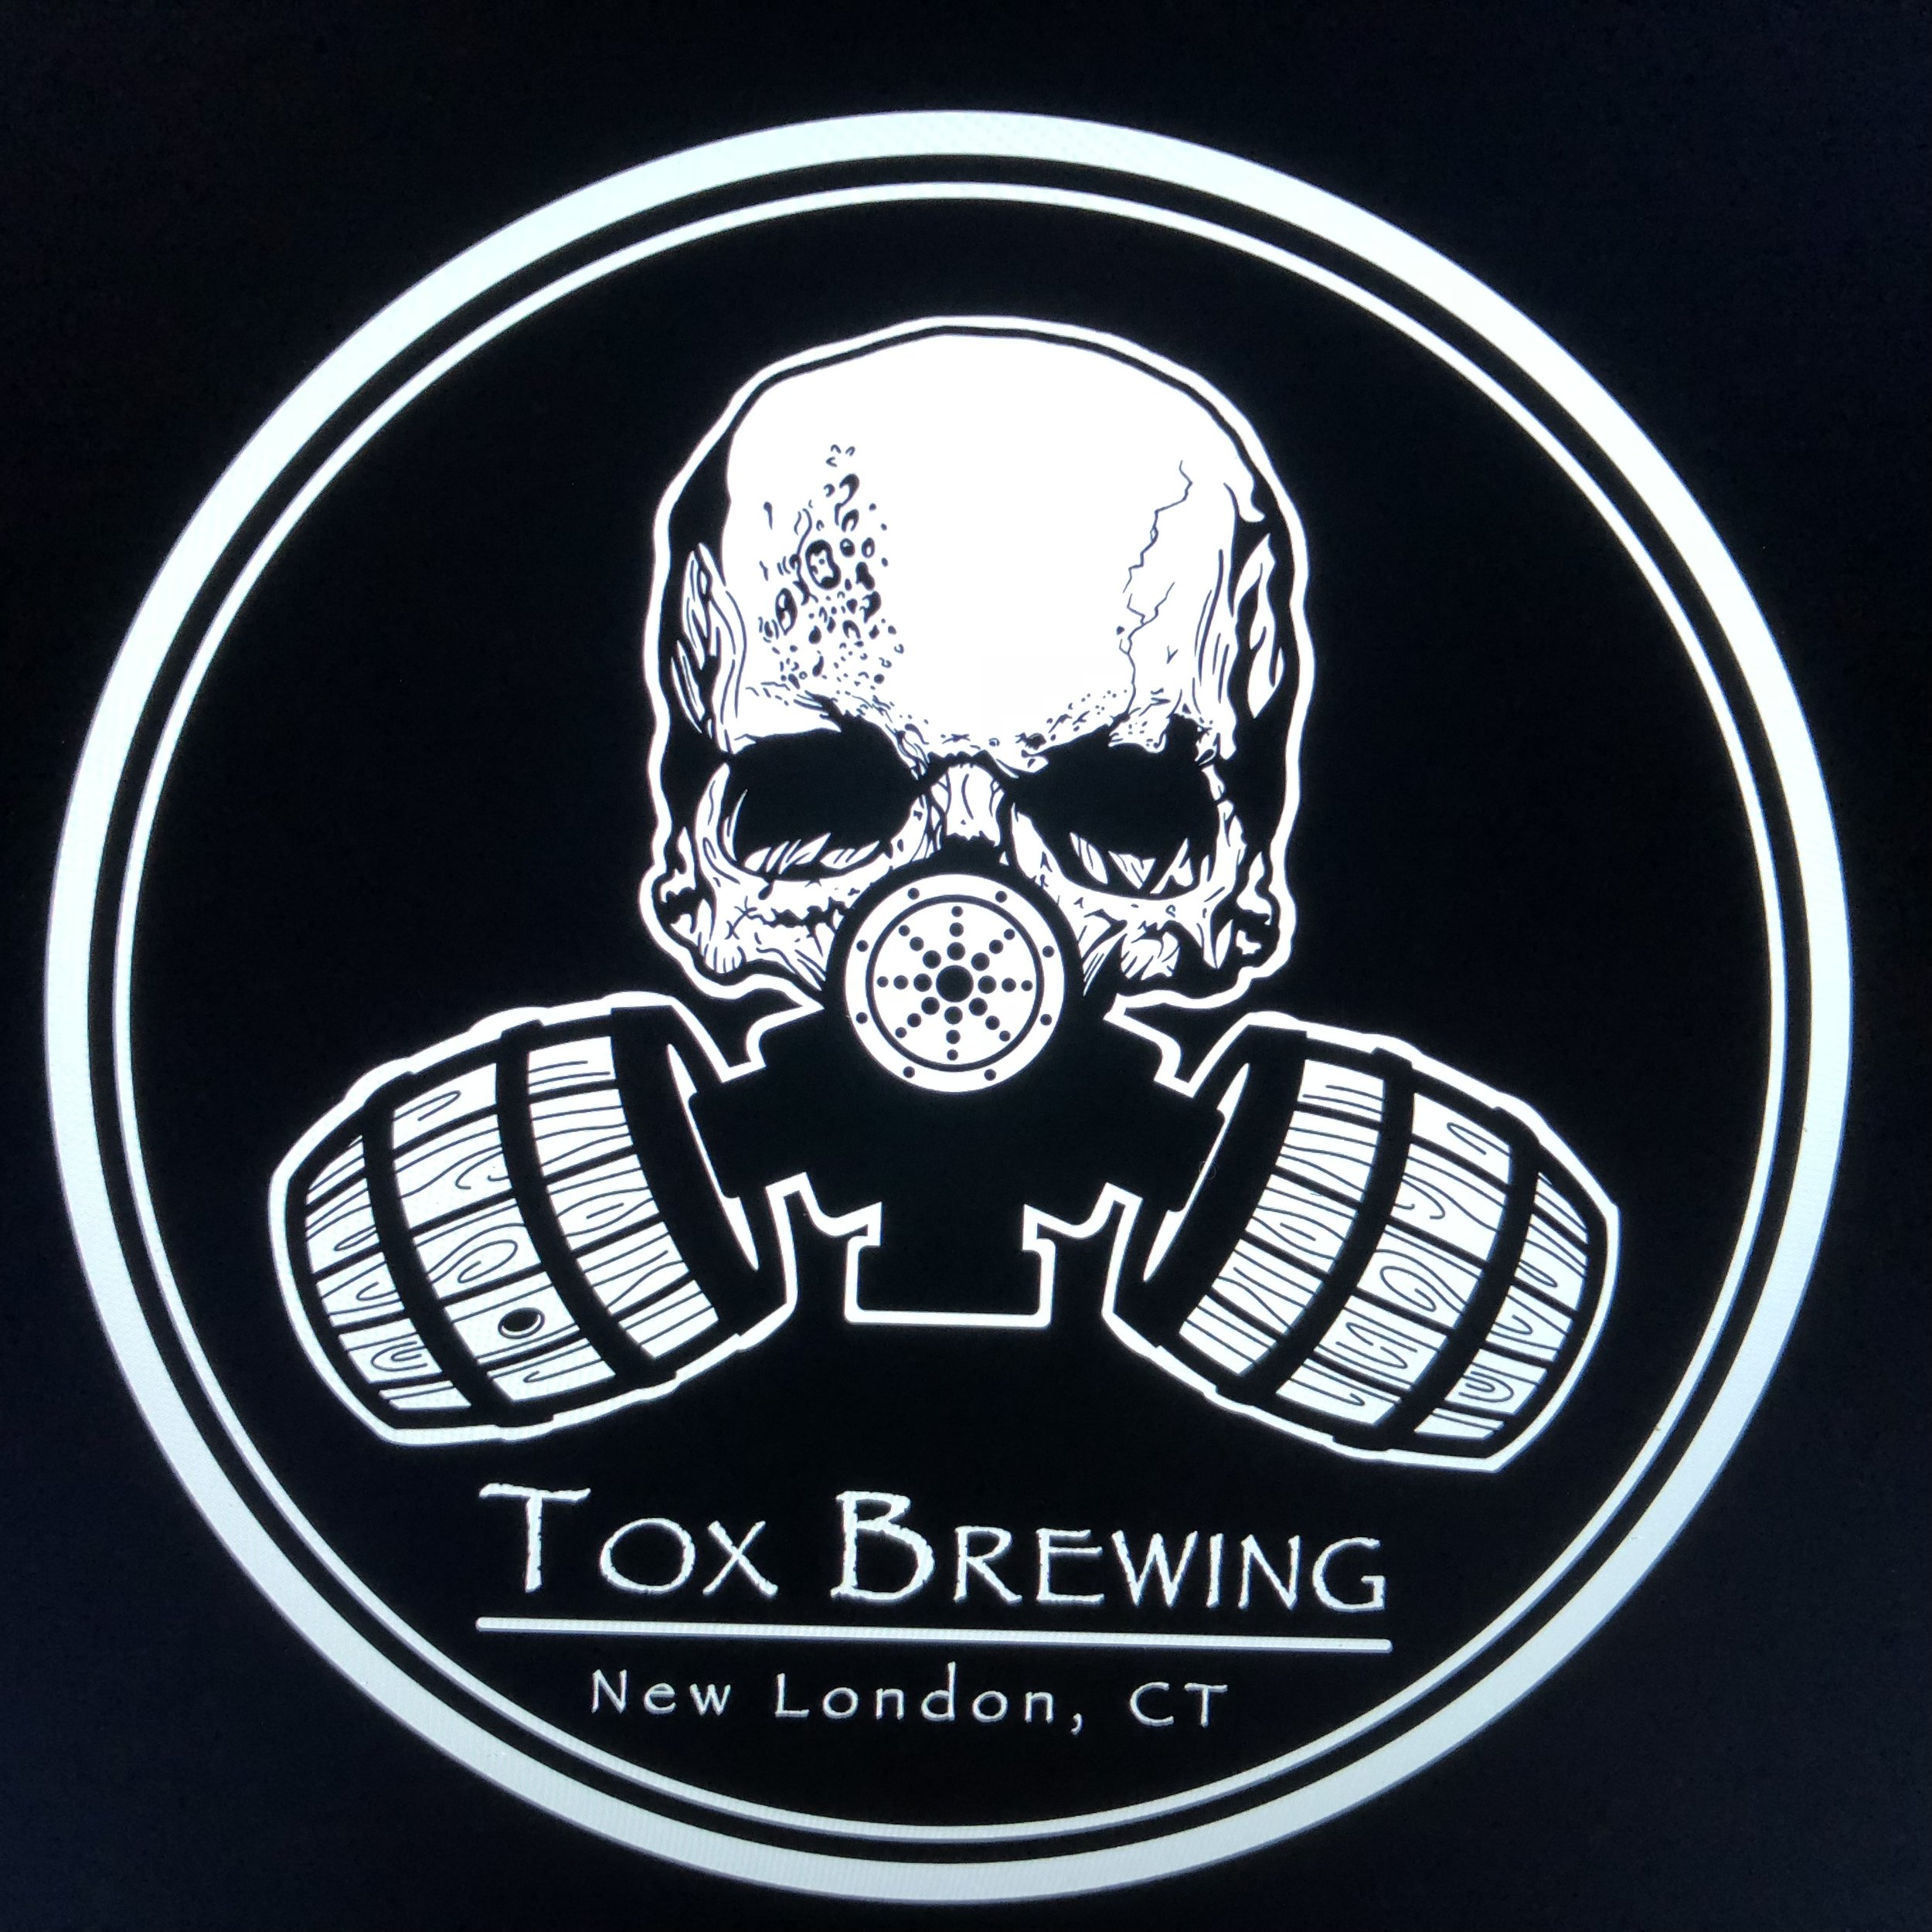 Pat's Redesign of our Skull/Gas Mask logo.